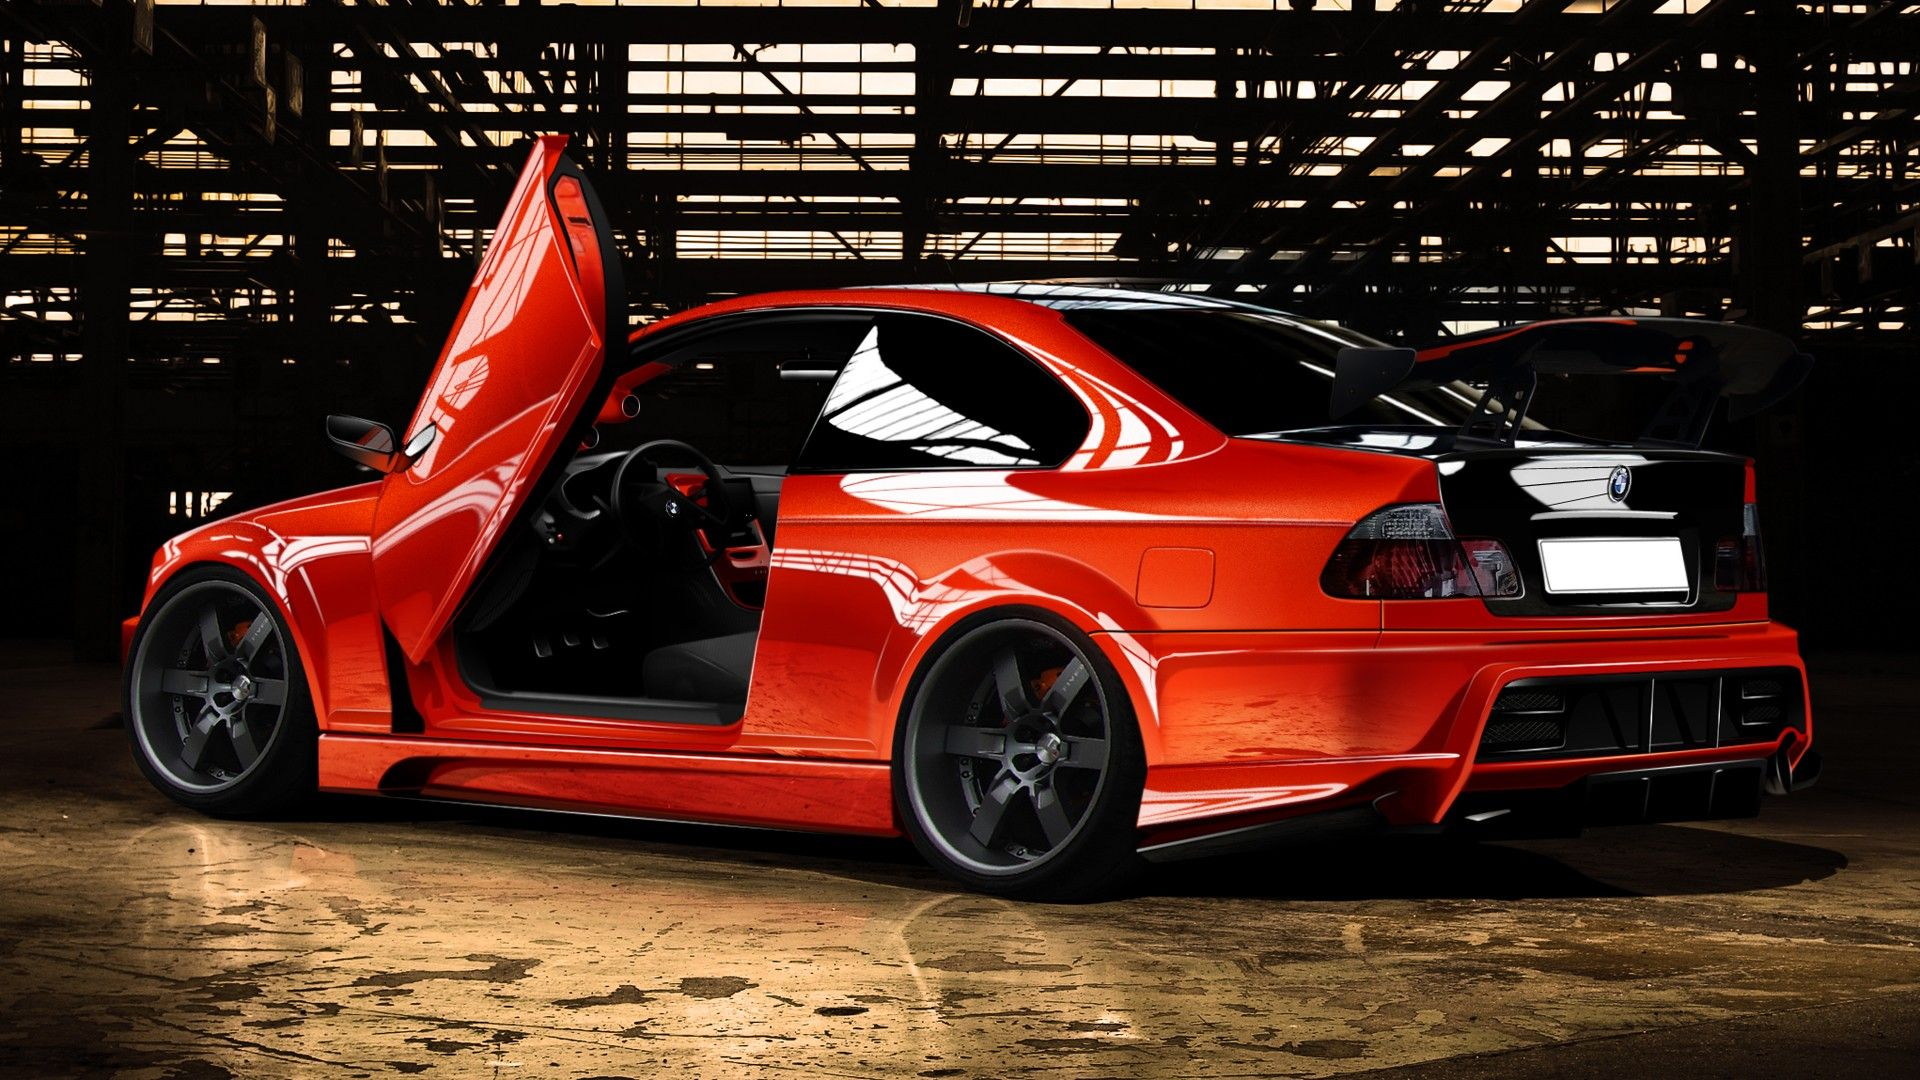 tuned bmw tuning bmw commentaires sur le fond d cran tuning bmw meeting car 39 s pinterest. Black Bedroom Furniture Sets. Home Design Ideas